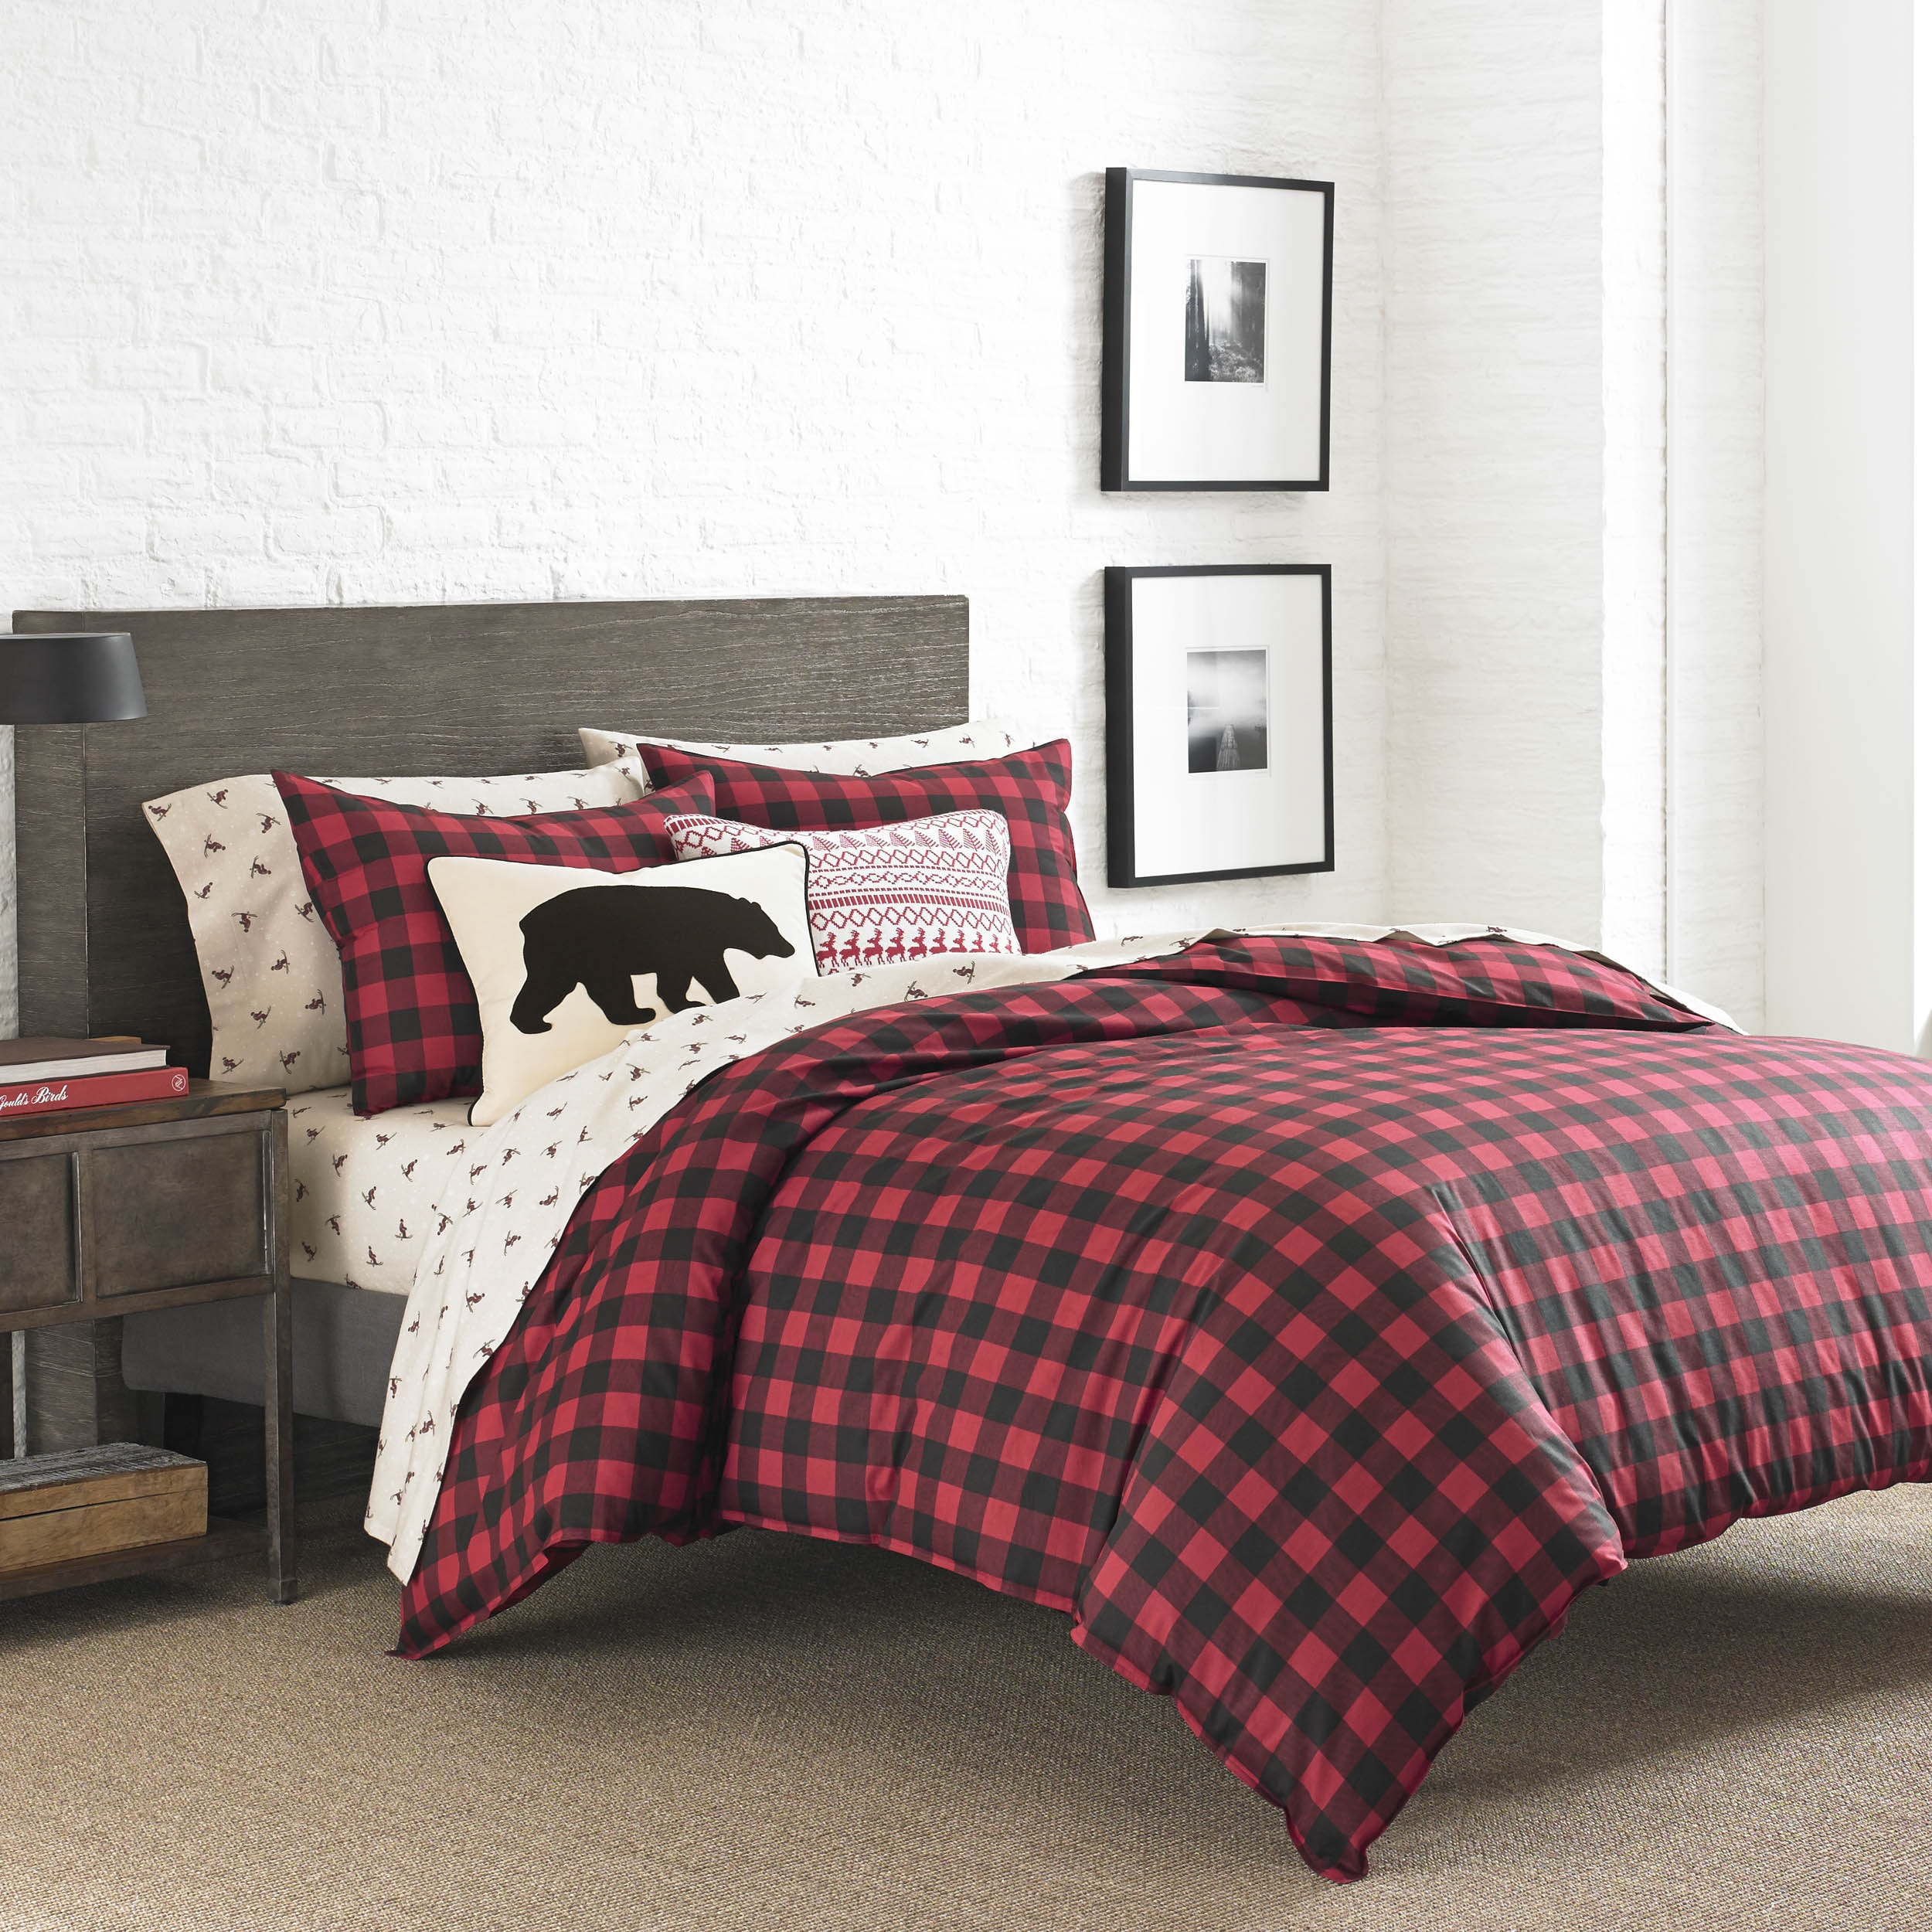 Red Comforter Sets | Find Great Fashion Bedding Deals Shopping At  Overstock.com